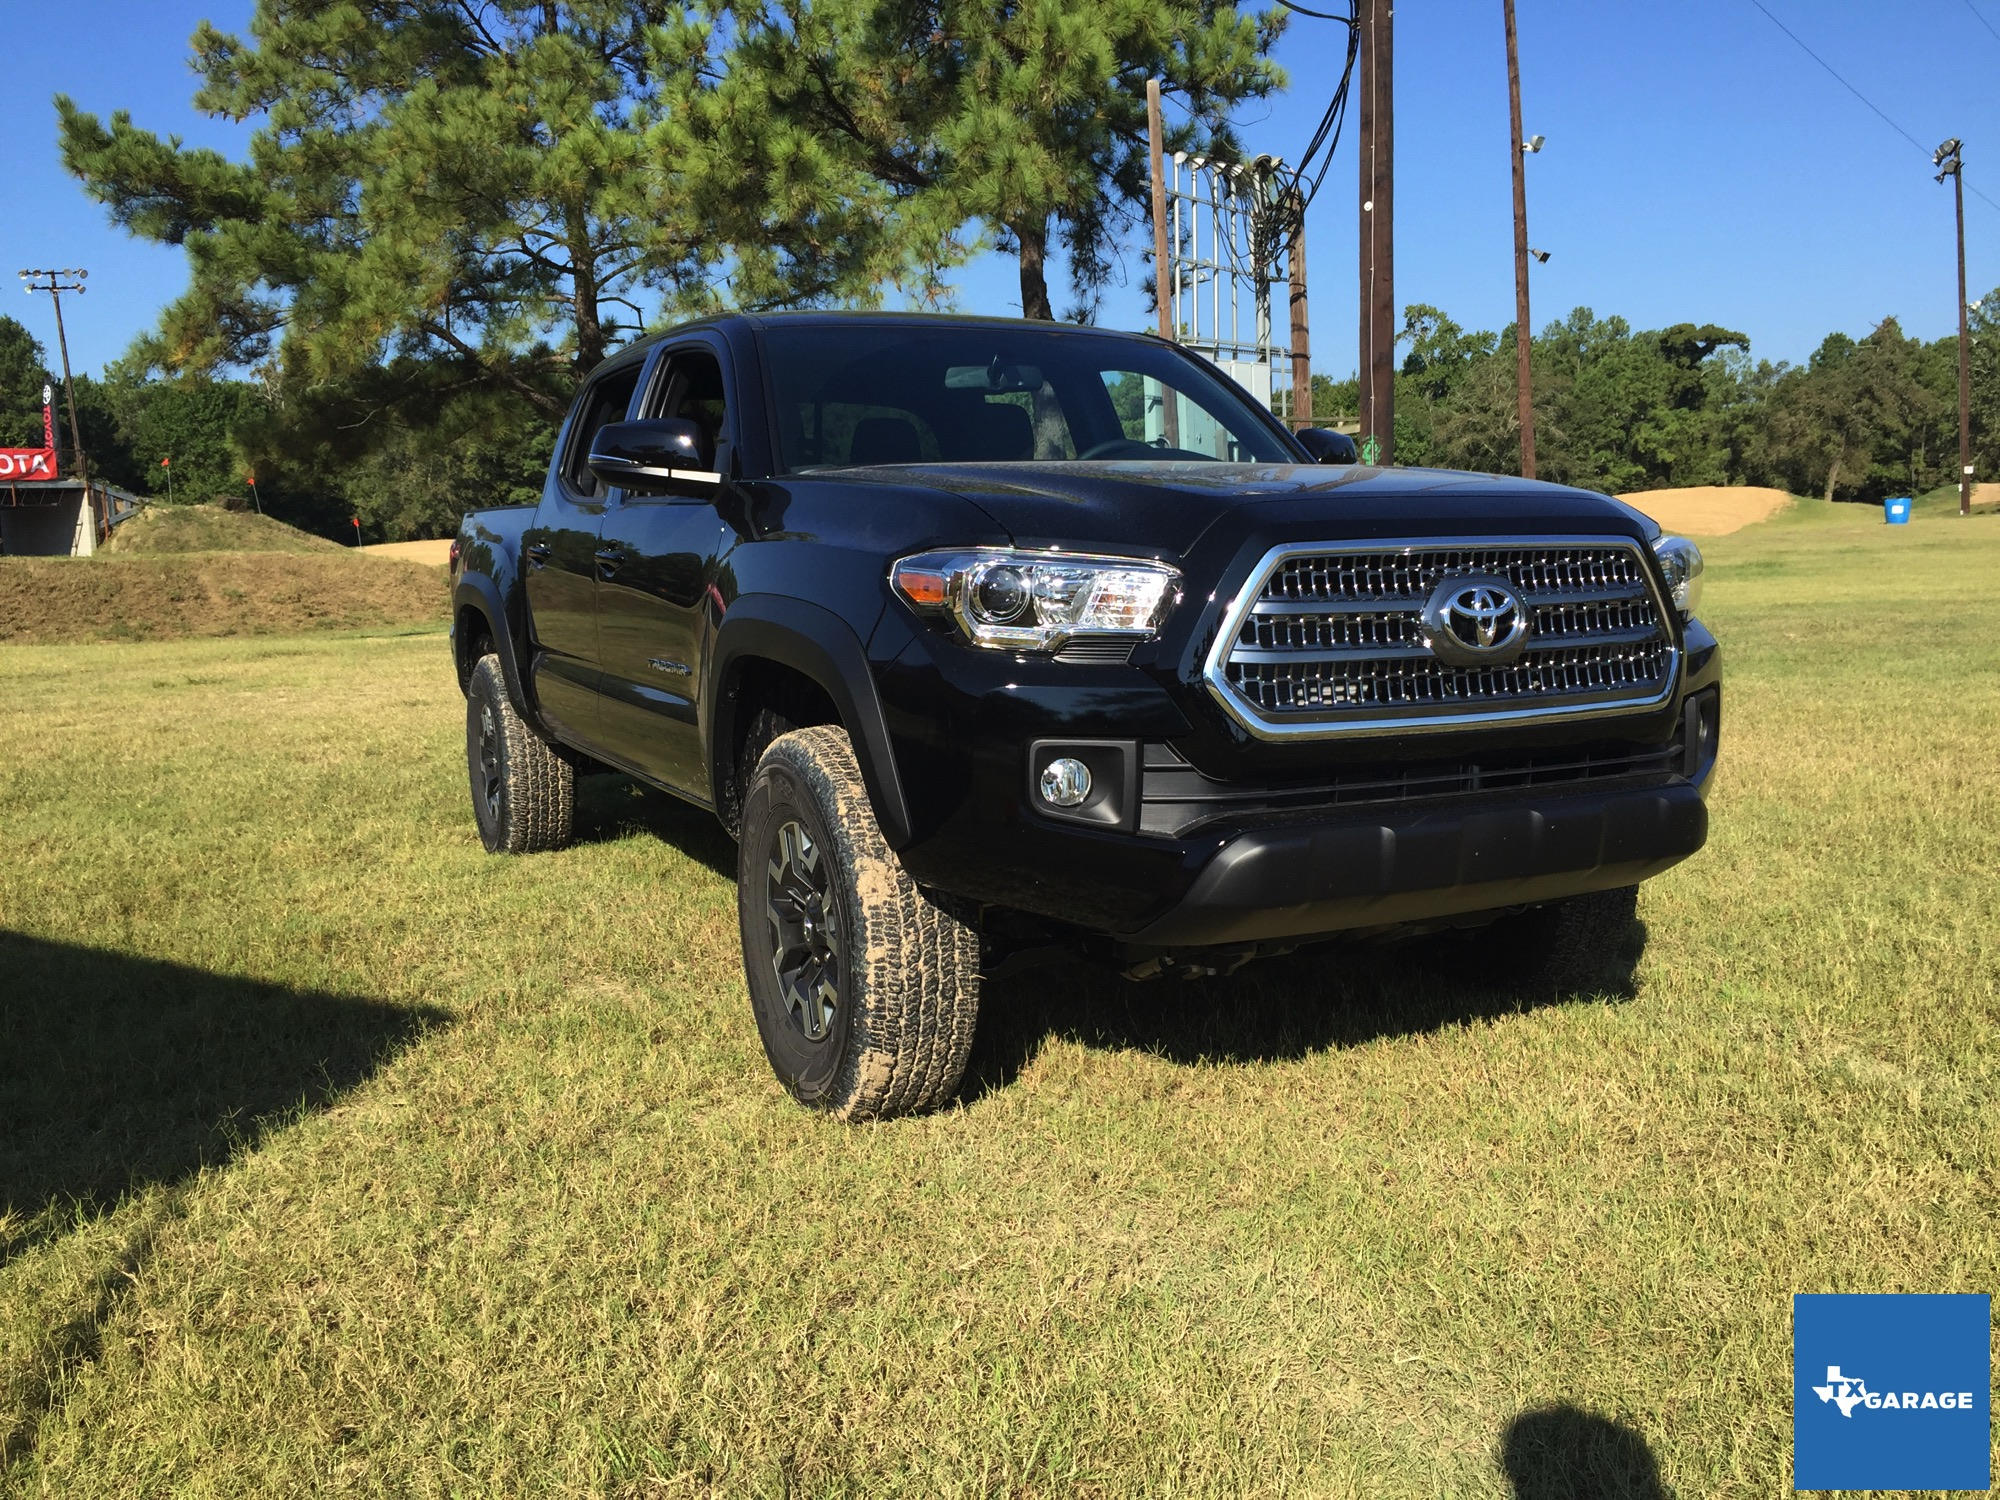 2016 Toyota Tacoma Houston Preview 016 Txgarage